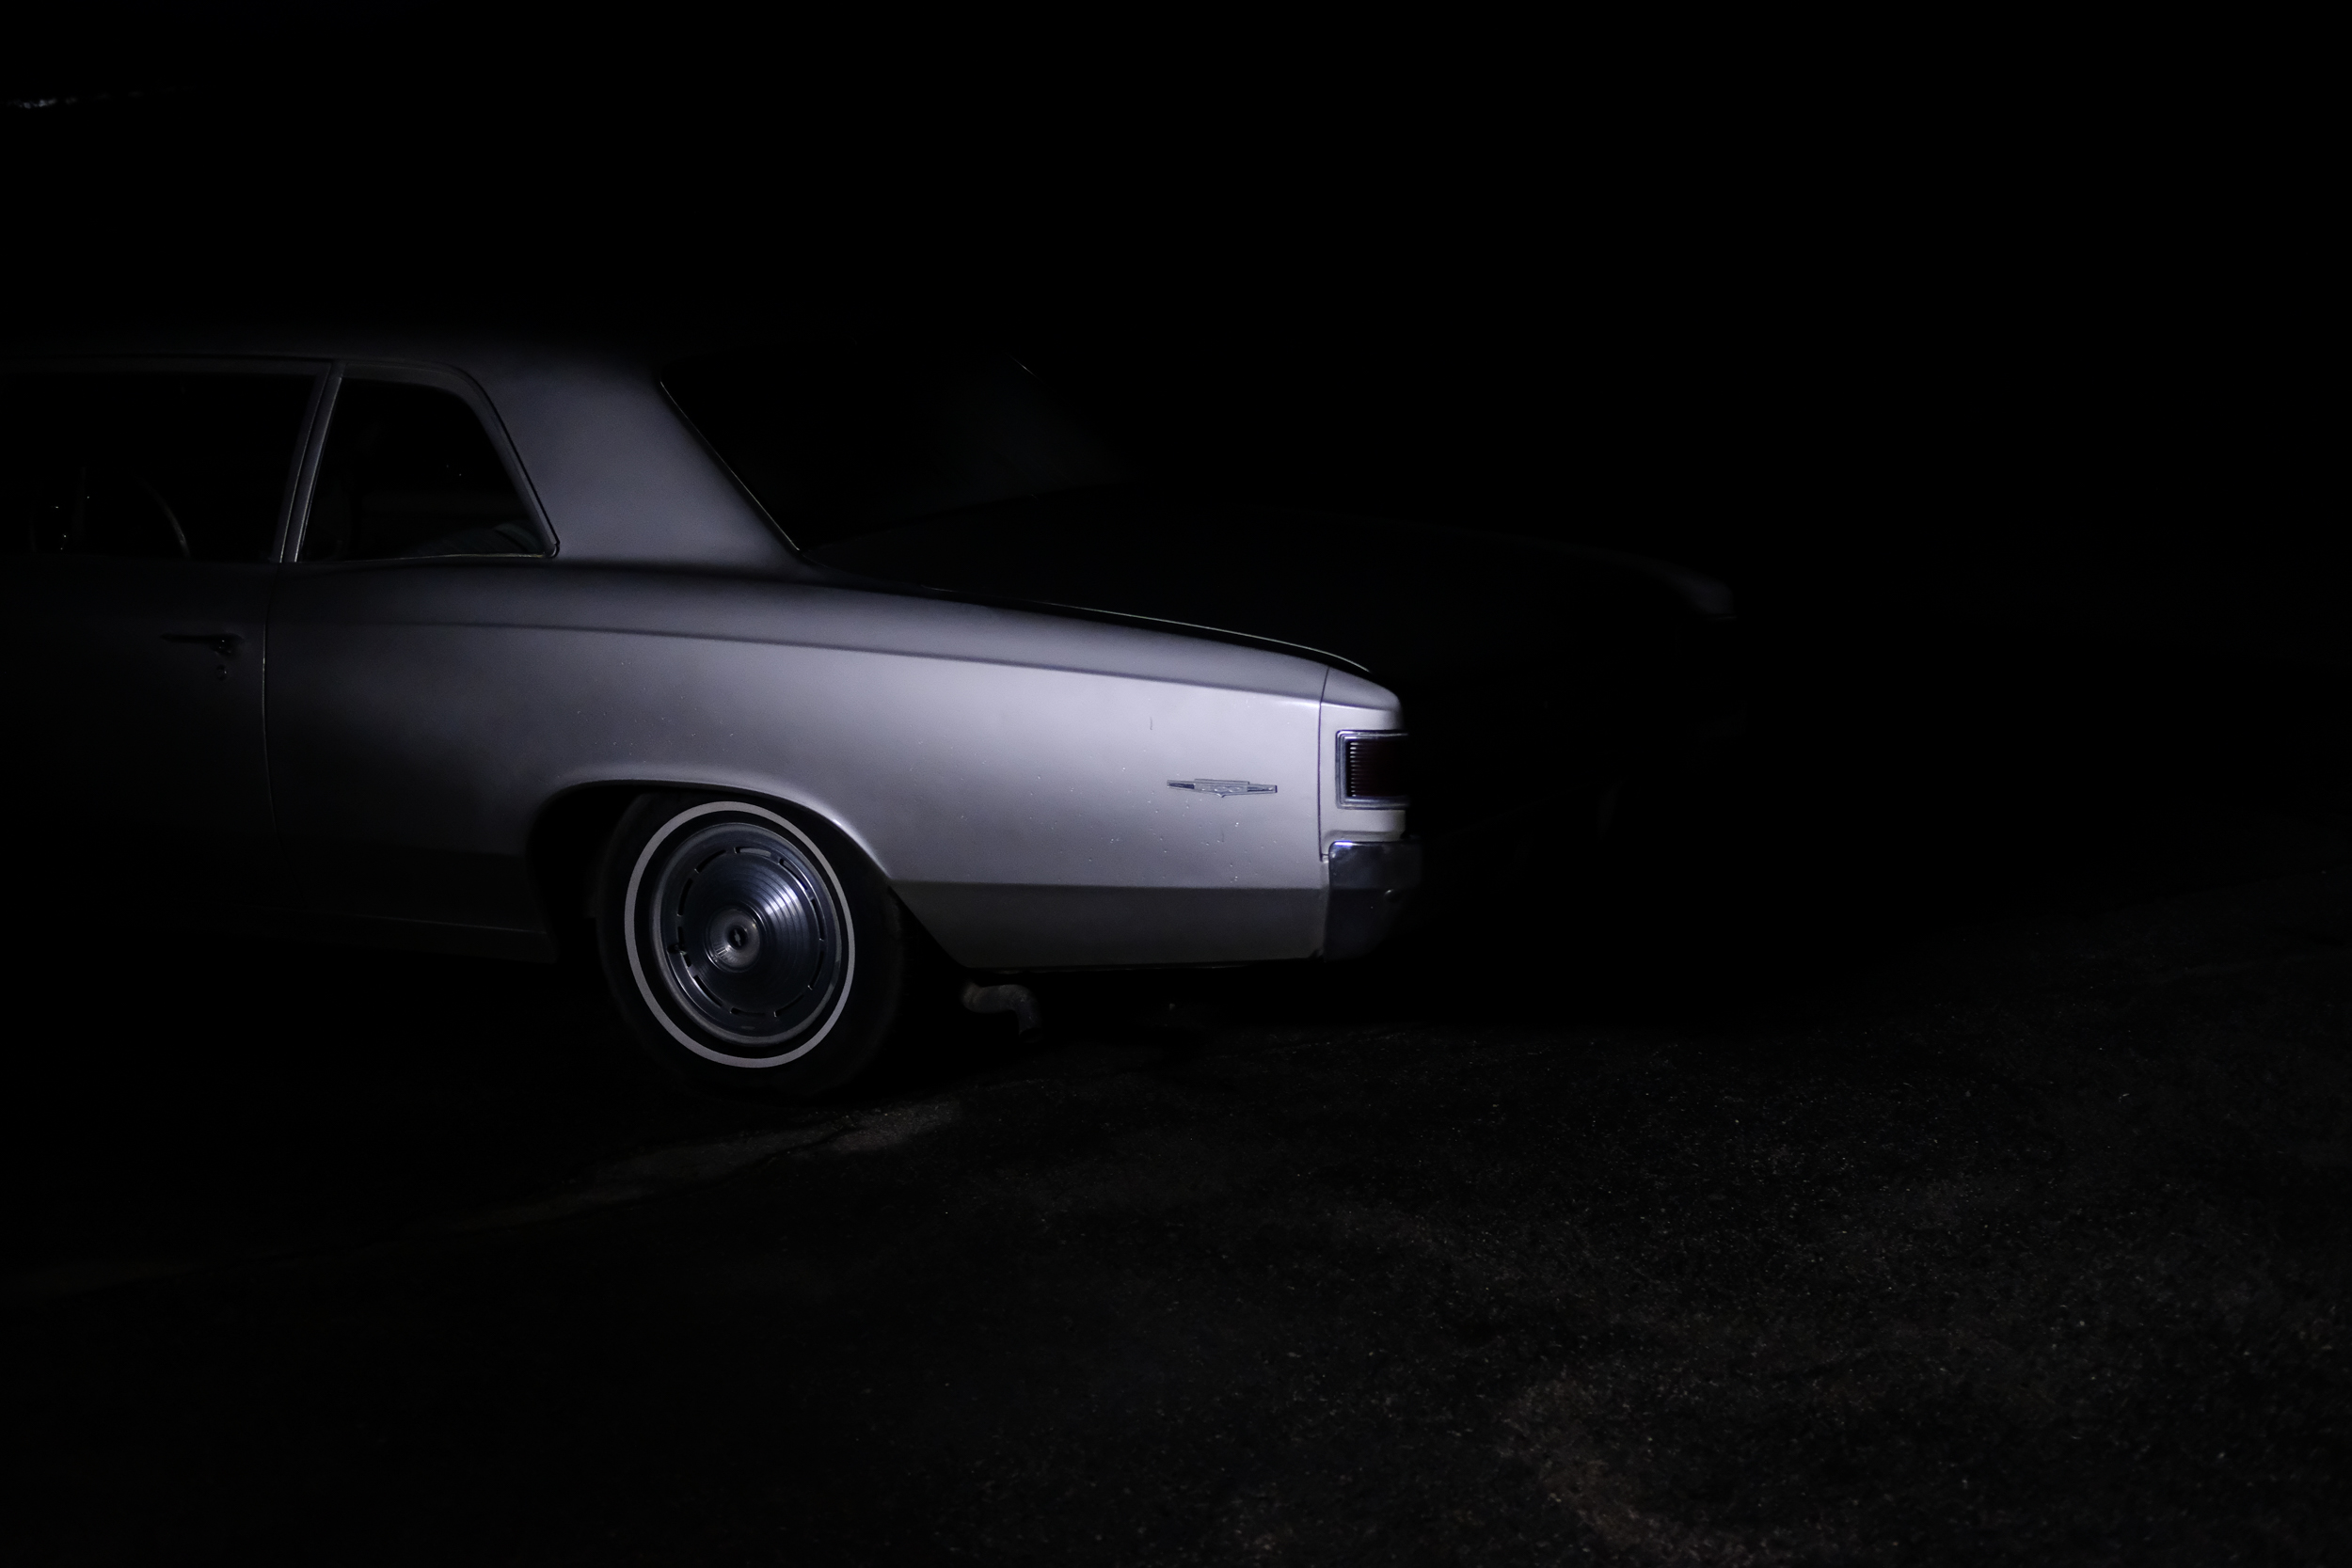 … at that moment the neon lights went out and I was left standing in the pitch black parking lot with only the sound of tires rolling across gravel towards the highway.